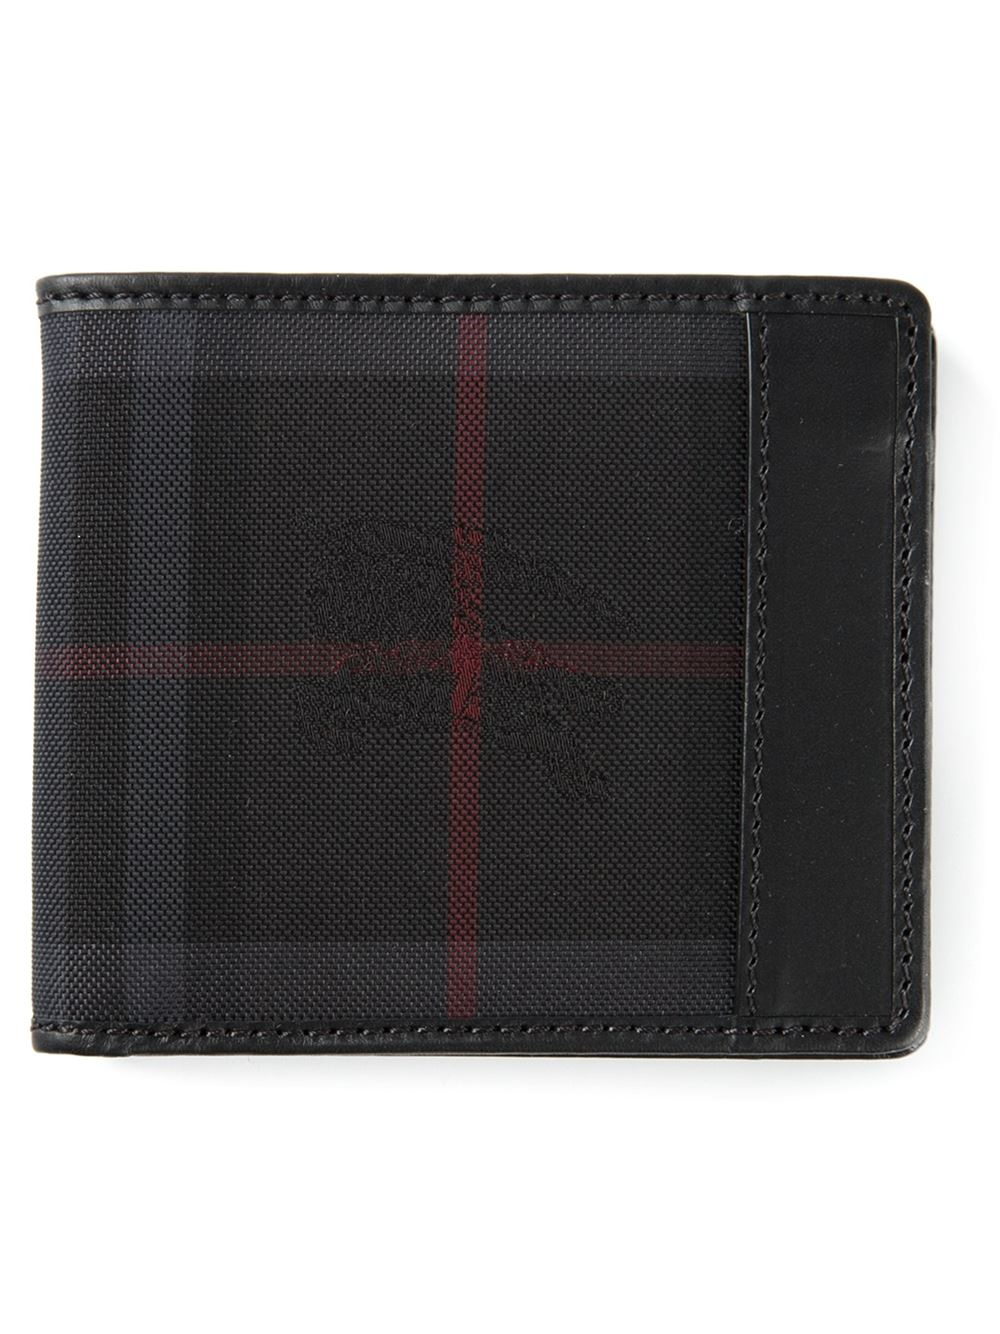 Burberry Horseferry Check Wallet in Black for Men